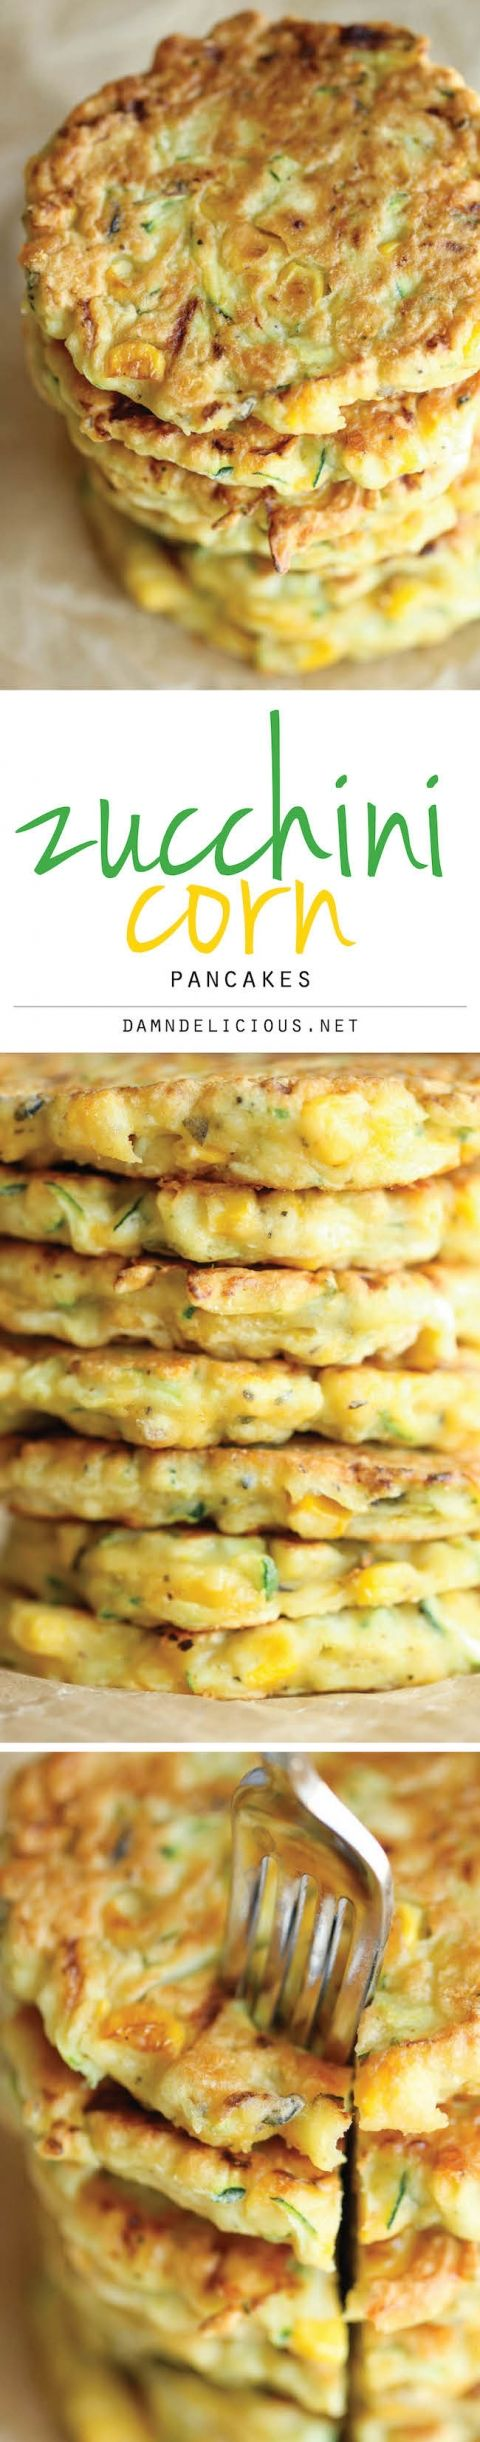 """Zucchini Corn Pancakes - Super easy pancakes perfect as a side dish or appetizer. And best of all, they don't even taste """"healthy""""!"""